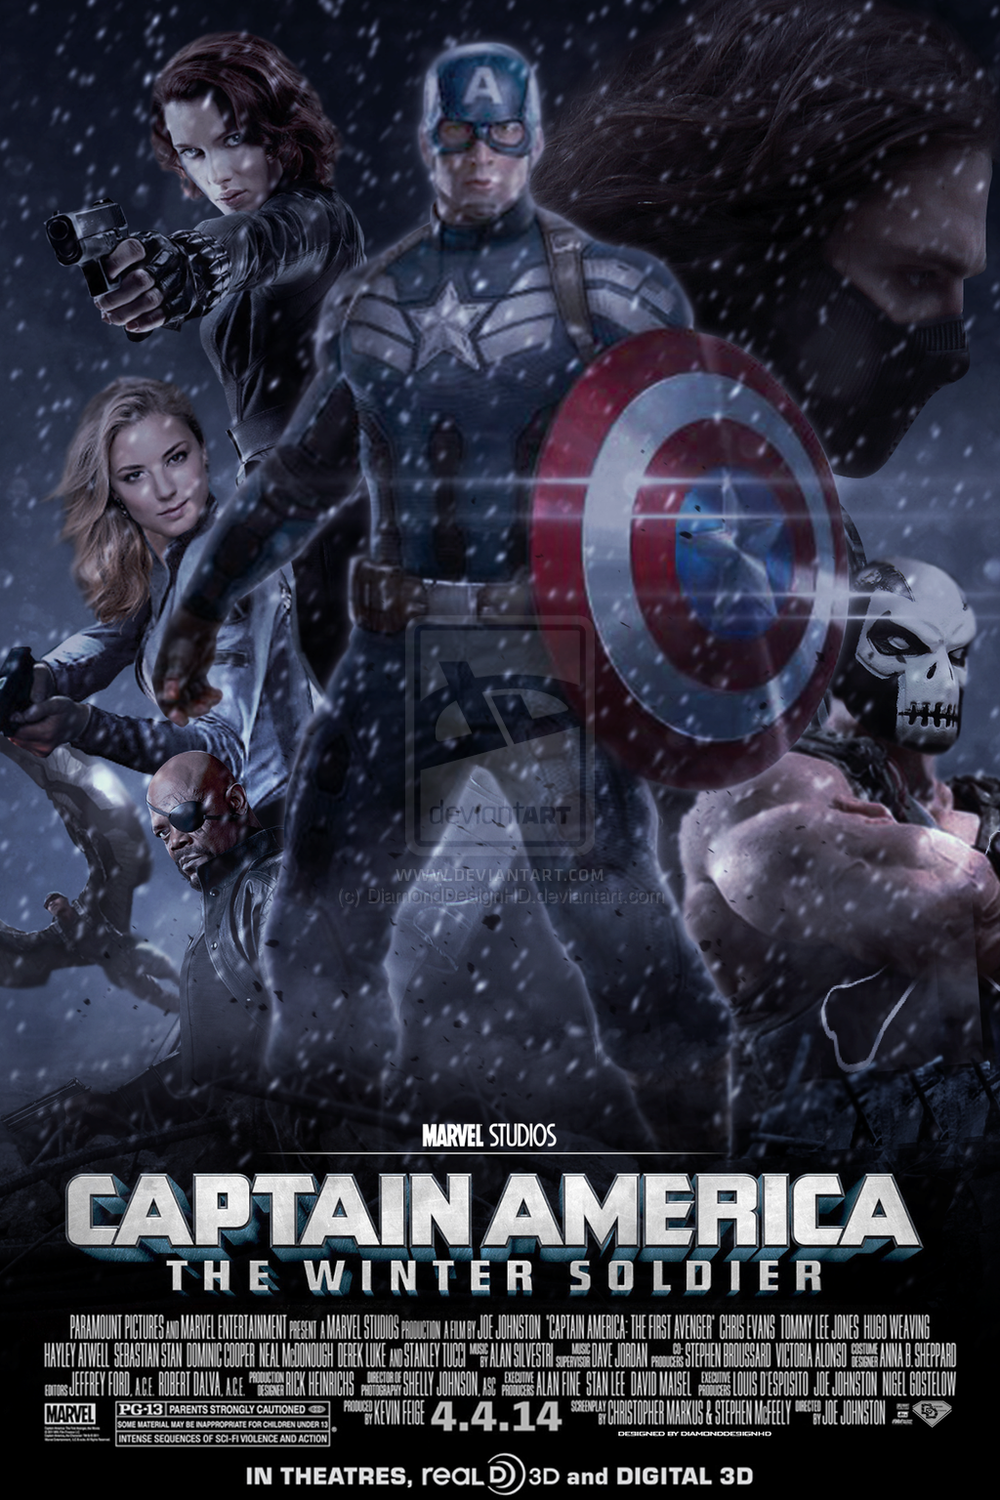 fan art for the avengers 2 captain america 2 and more